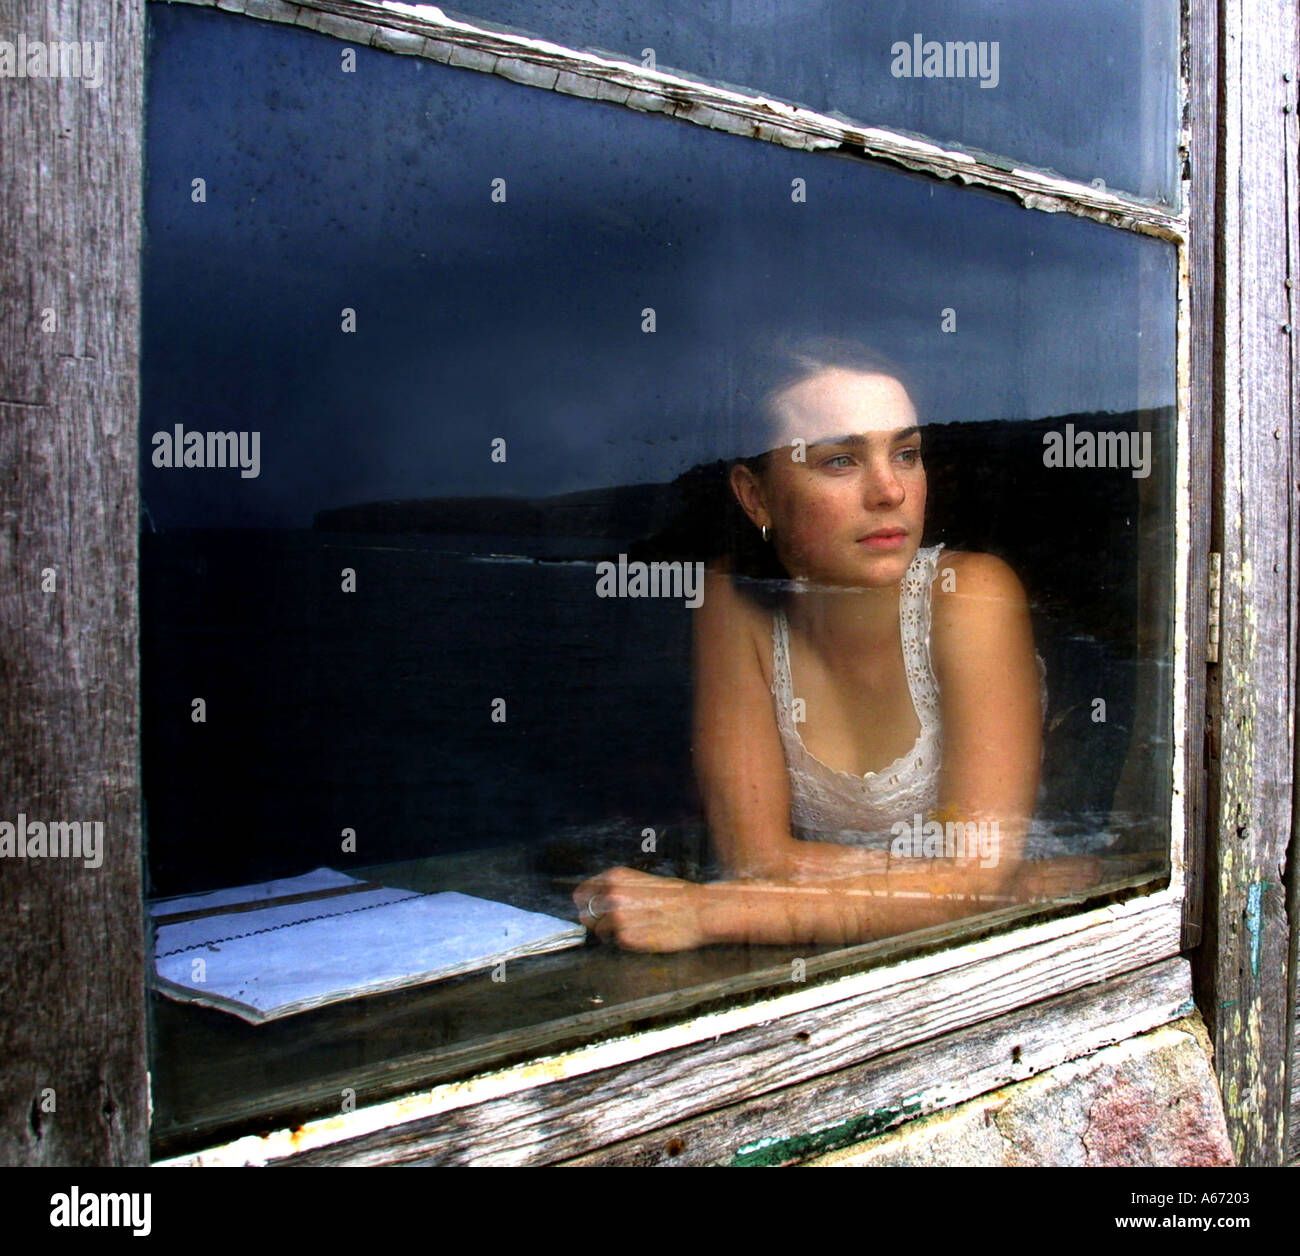 A young woman looks out a window of an isolated hut. - Stock Image